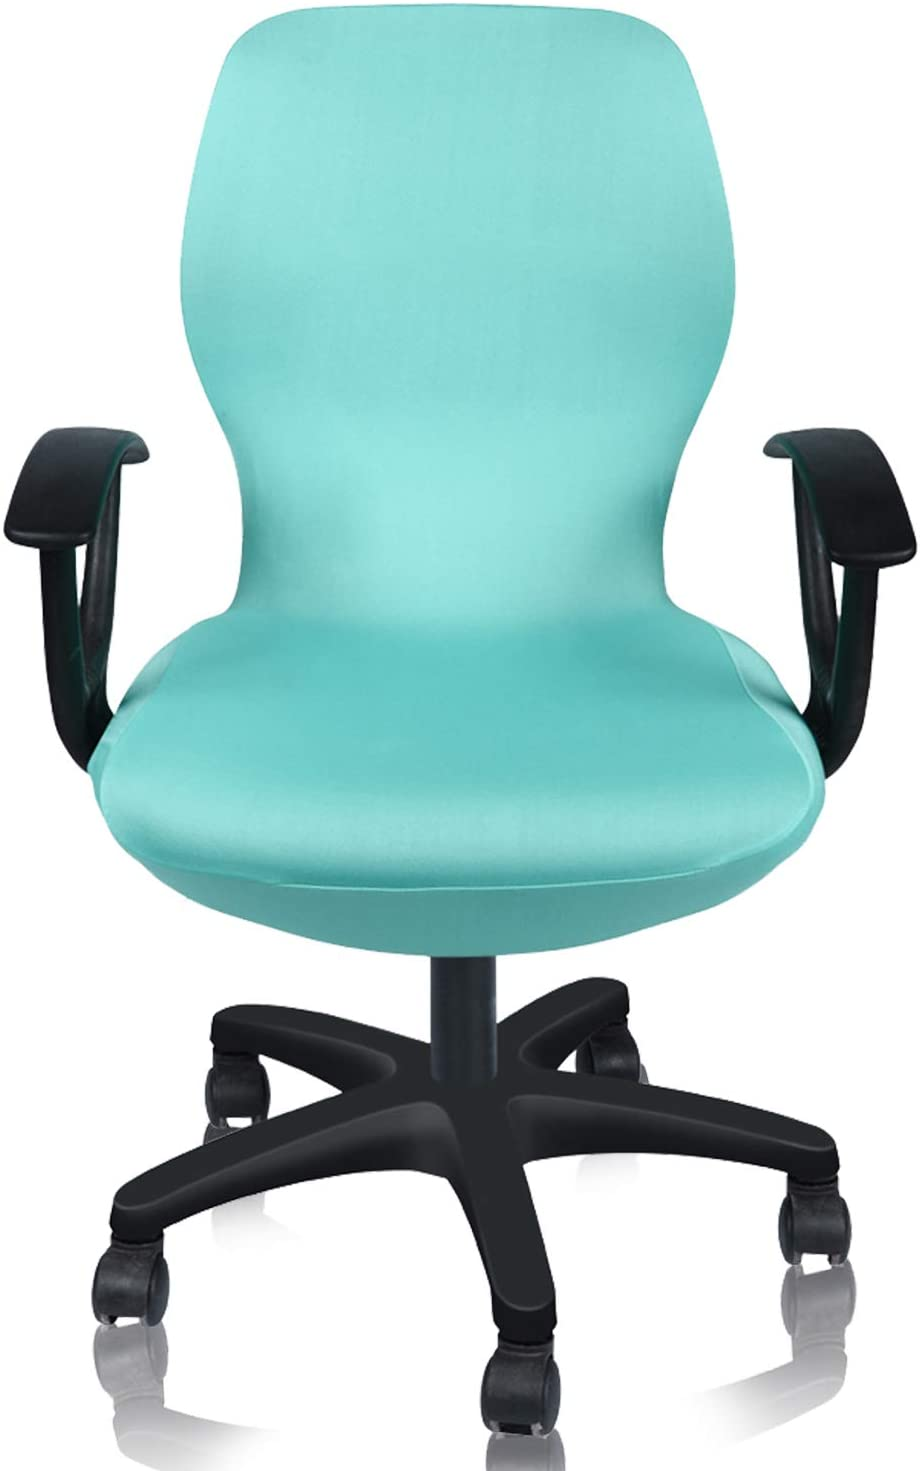 Deisy Dee Computer Office Chair Covers Pure Color Universal Chair Cover Stretch Rotating Chair Slipcovers Cover ONLY Chair Covers C098 (Lake Blue)